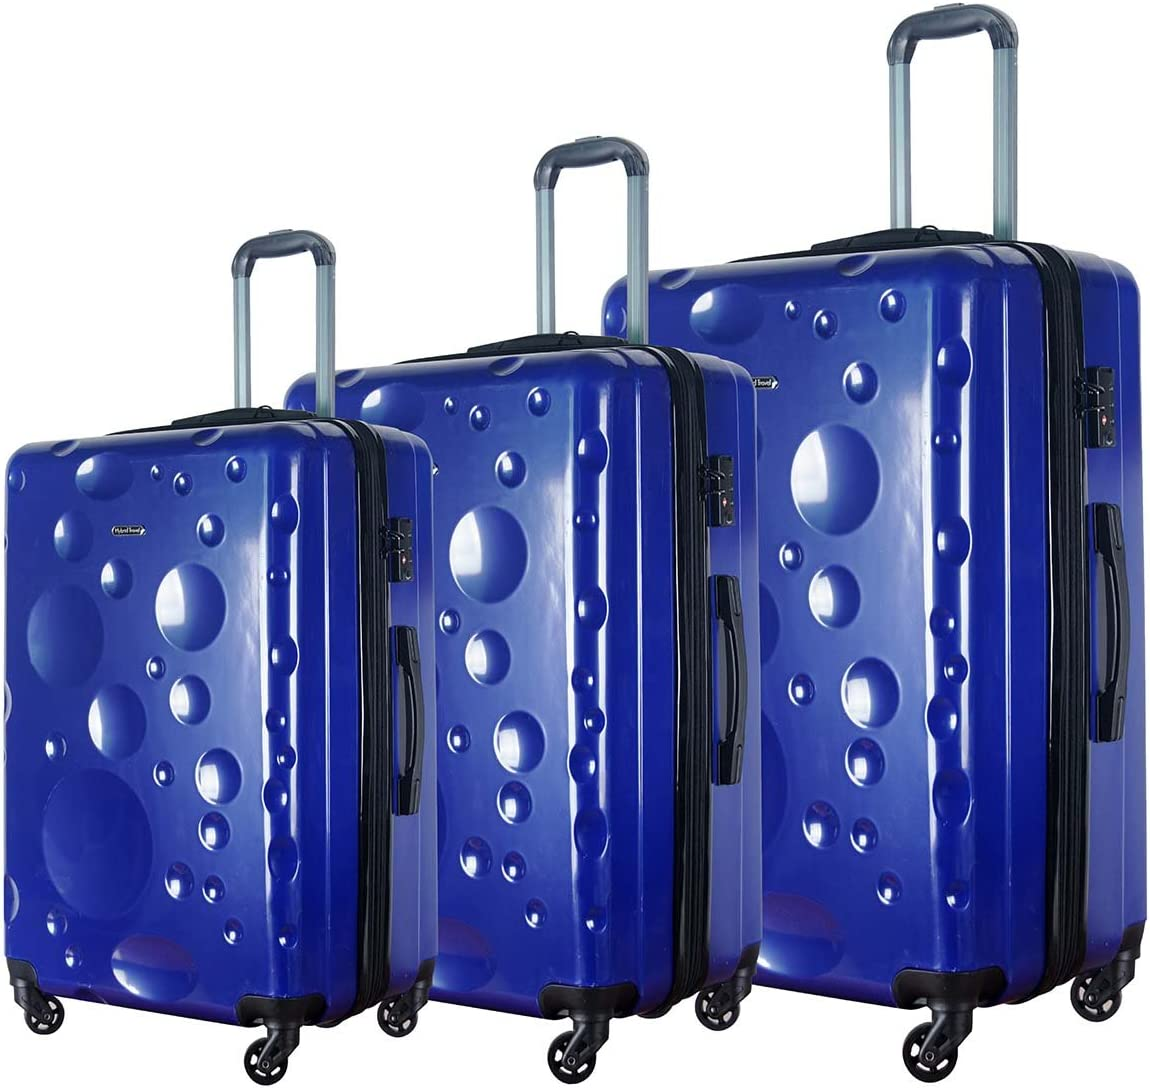 Black 3 Pieces HyBrid /& Company Luggage Set Durable Lightweight Spinner Suitcase LUG3-628